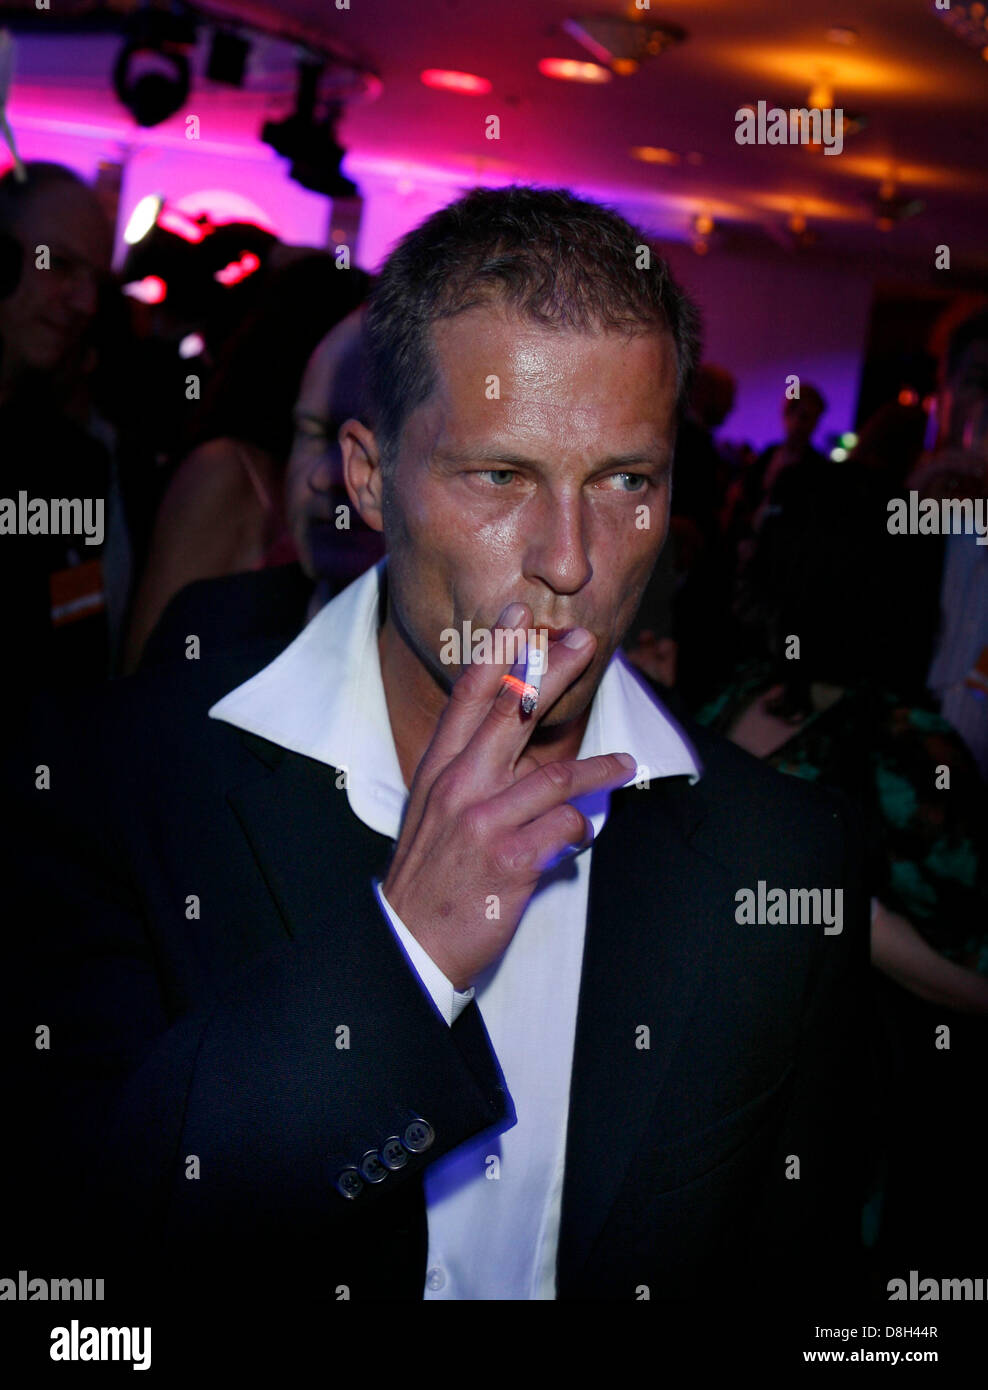 Til Schweiger smokes at the awarding ceremony of the German Film Award Lola on the 25th of April in 2008 in Berlin. - Stock Image